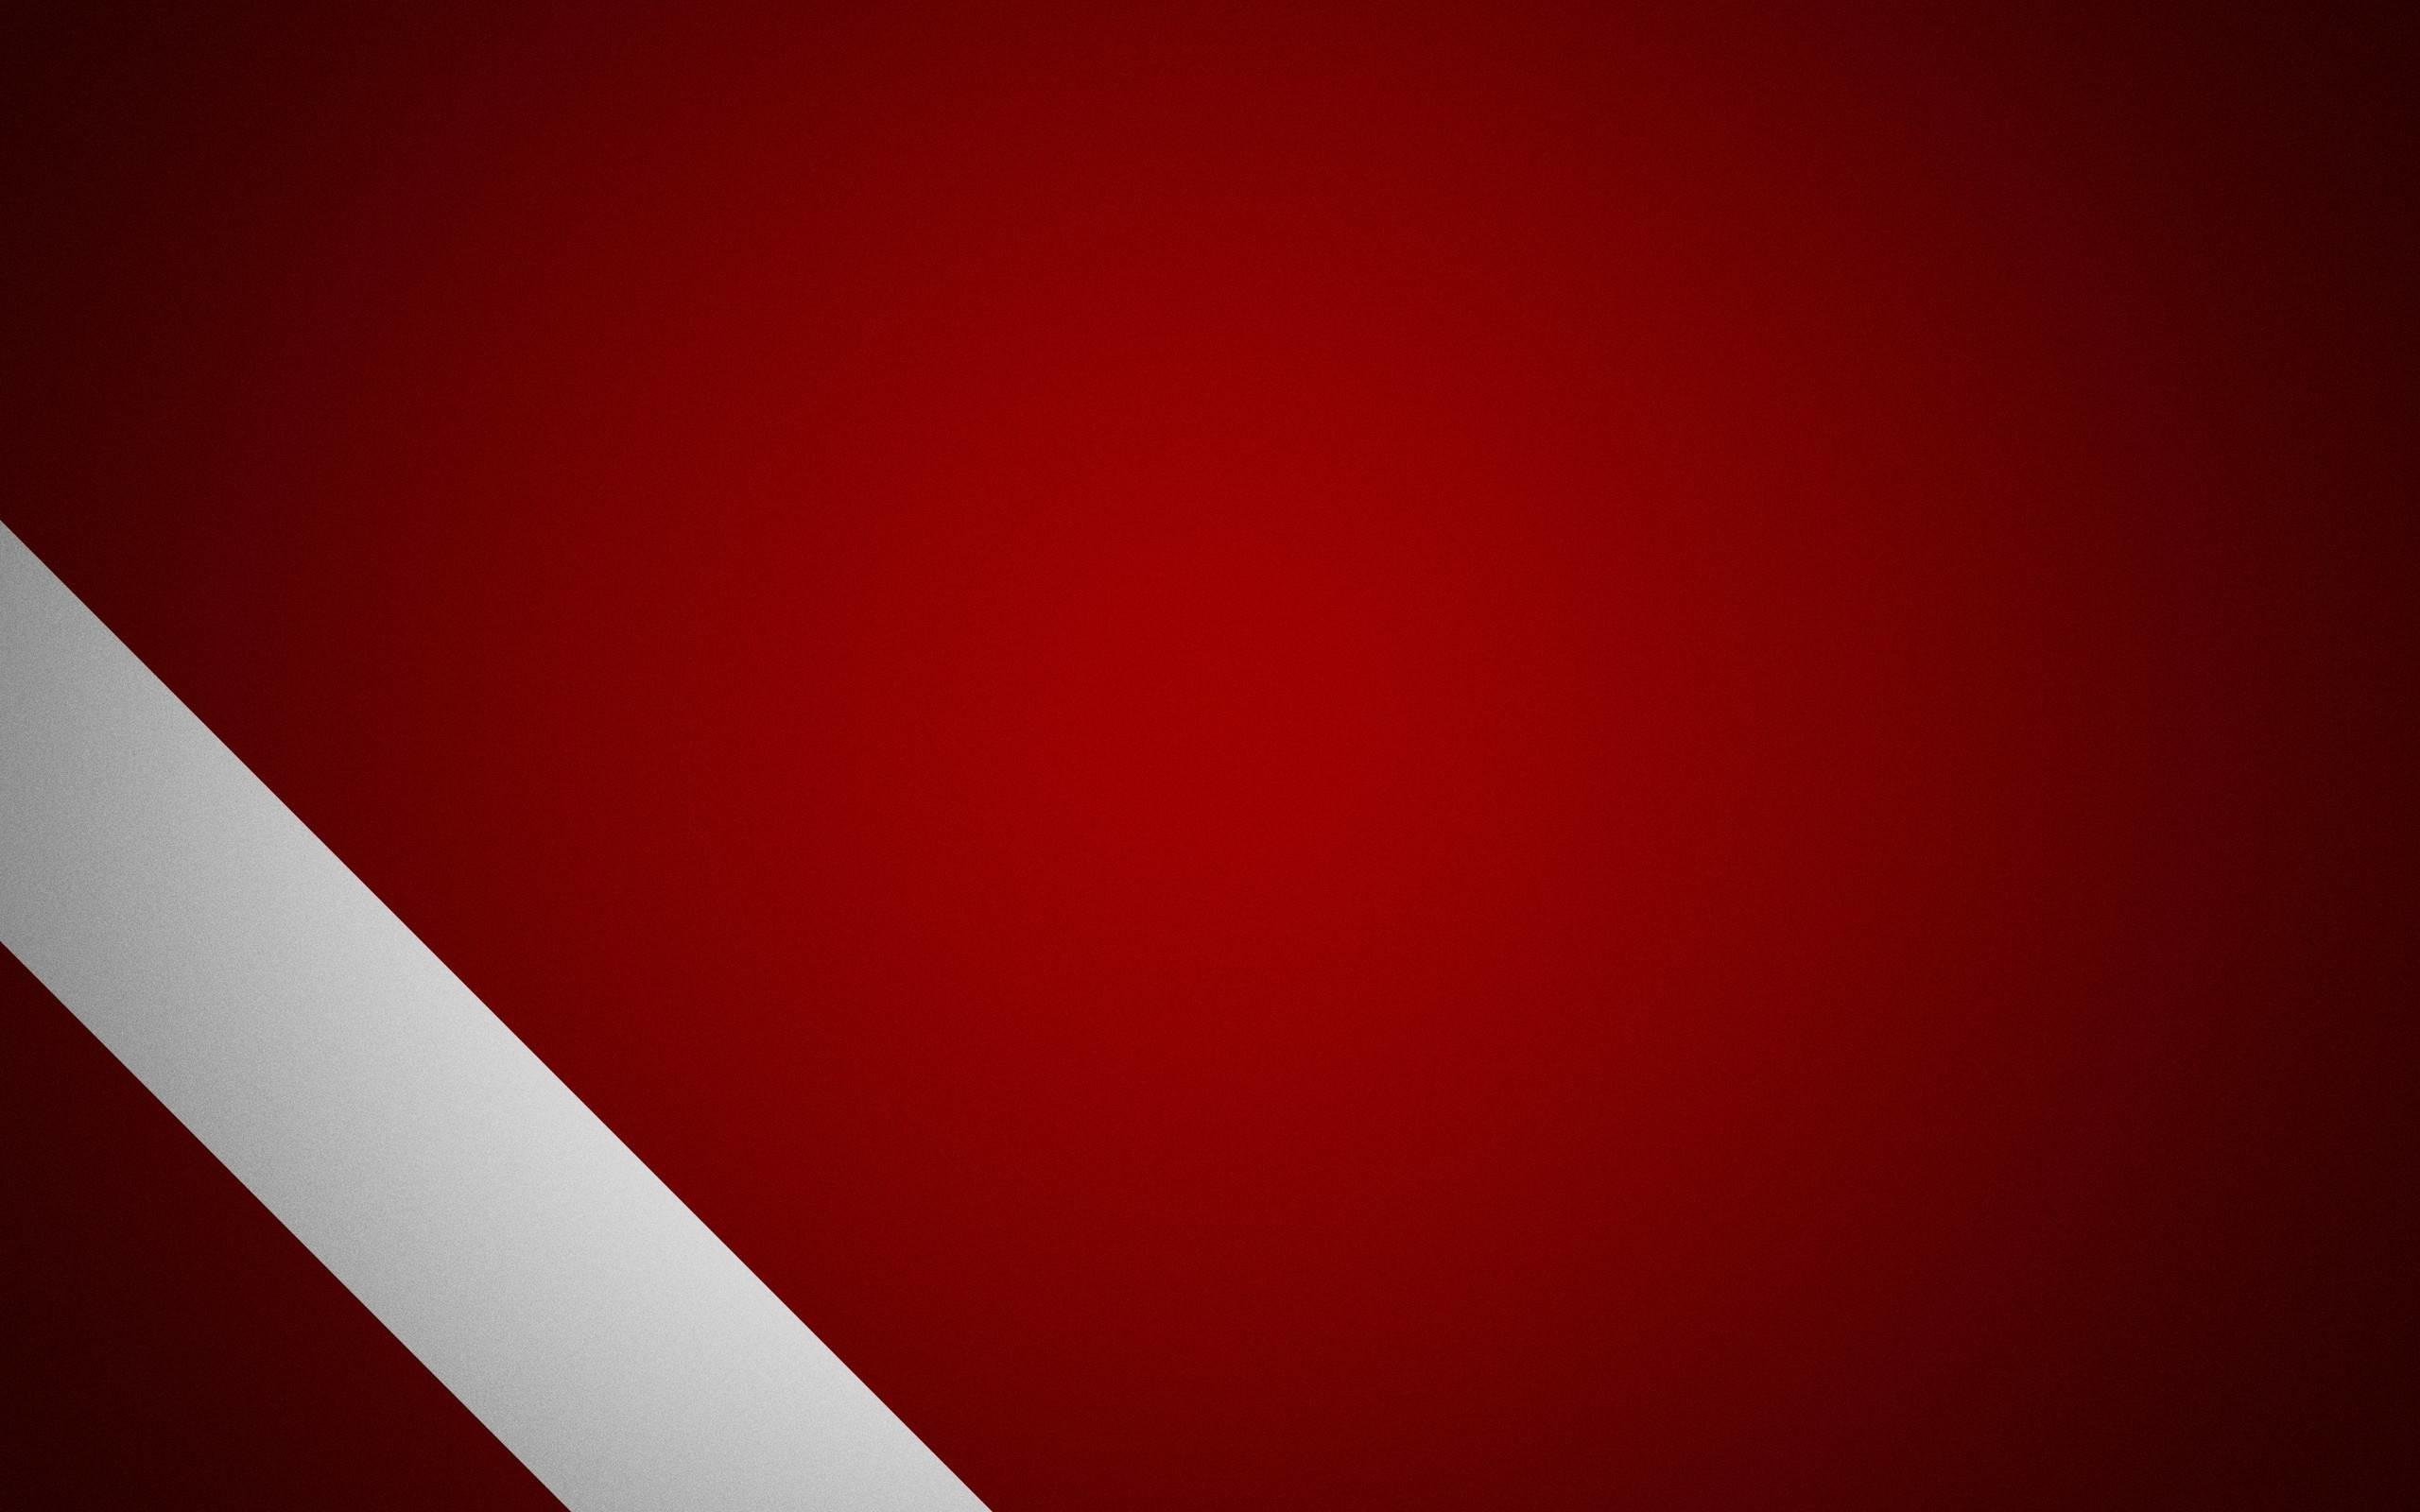 2560x1600 Wallpapers Abstract Red White Amp Black Walls Plox Typeon High